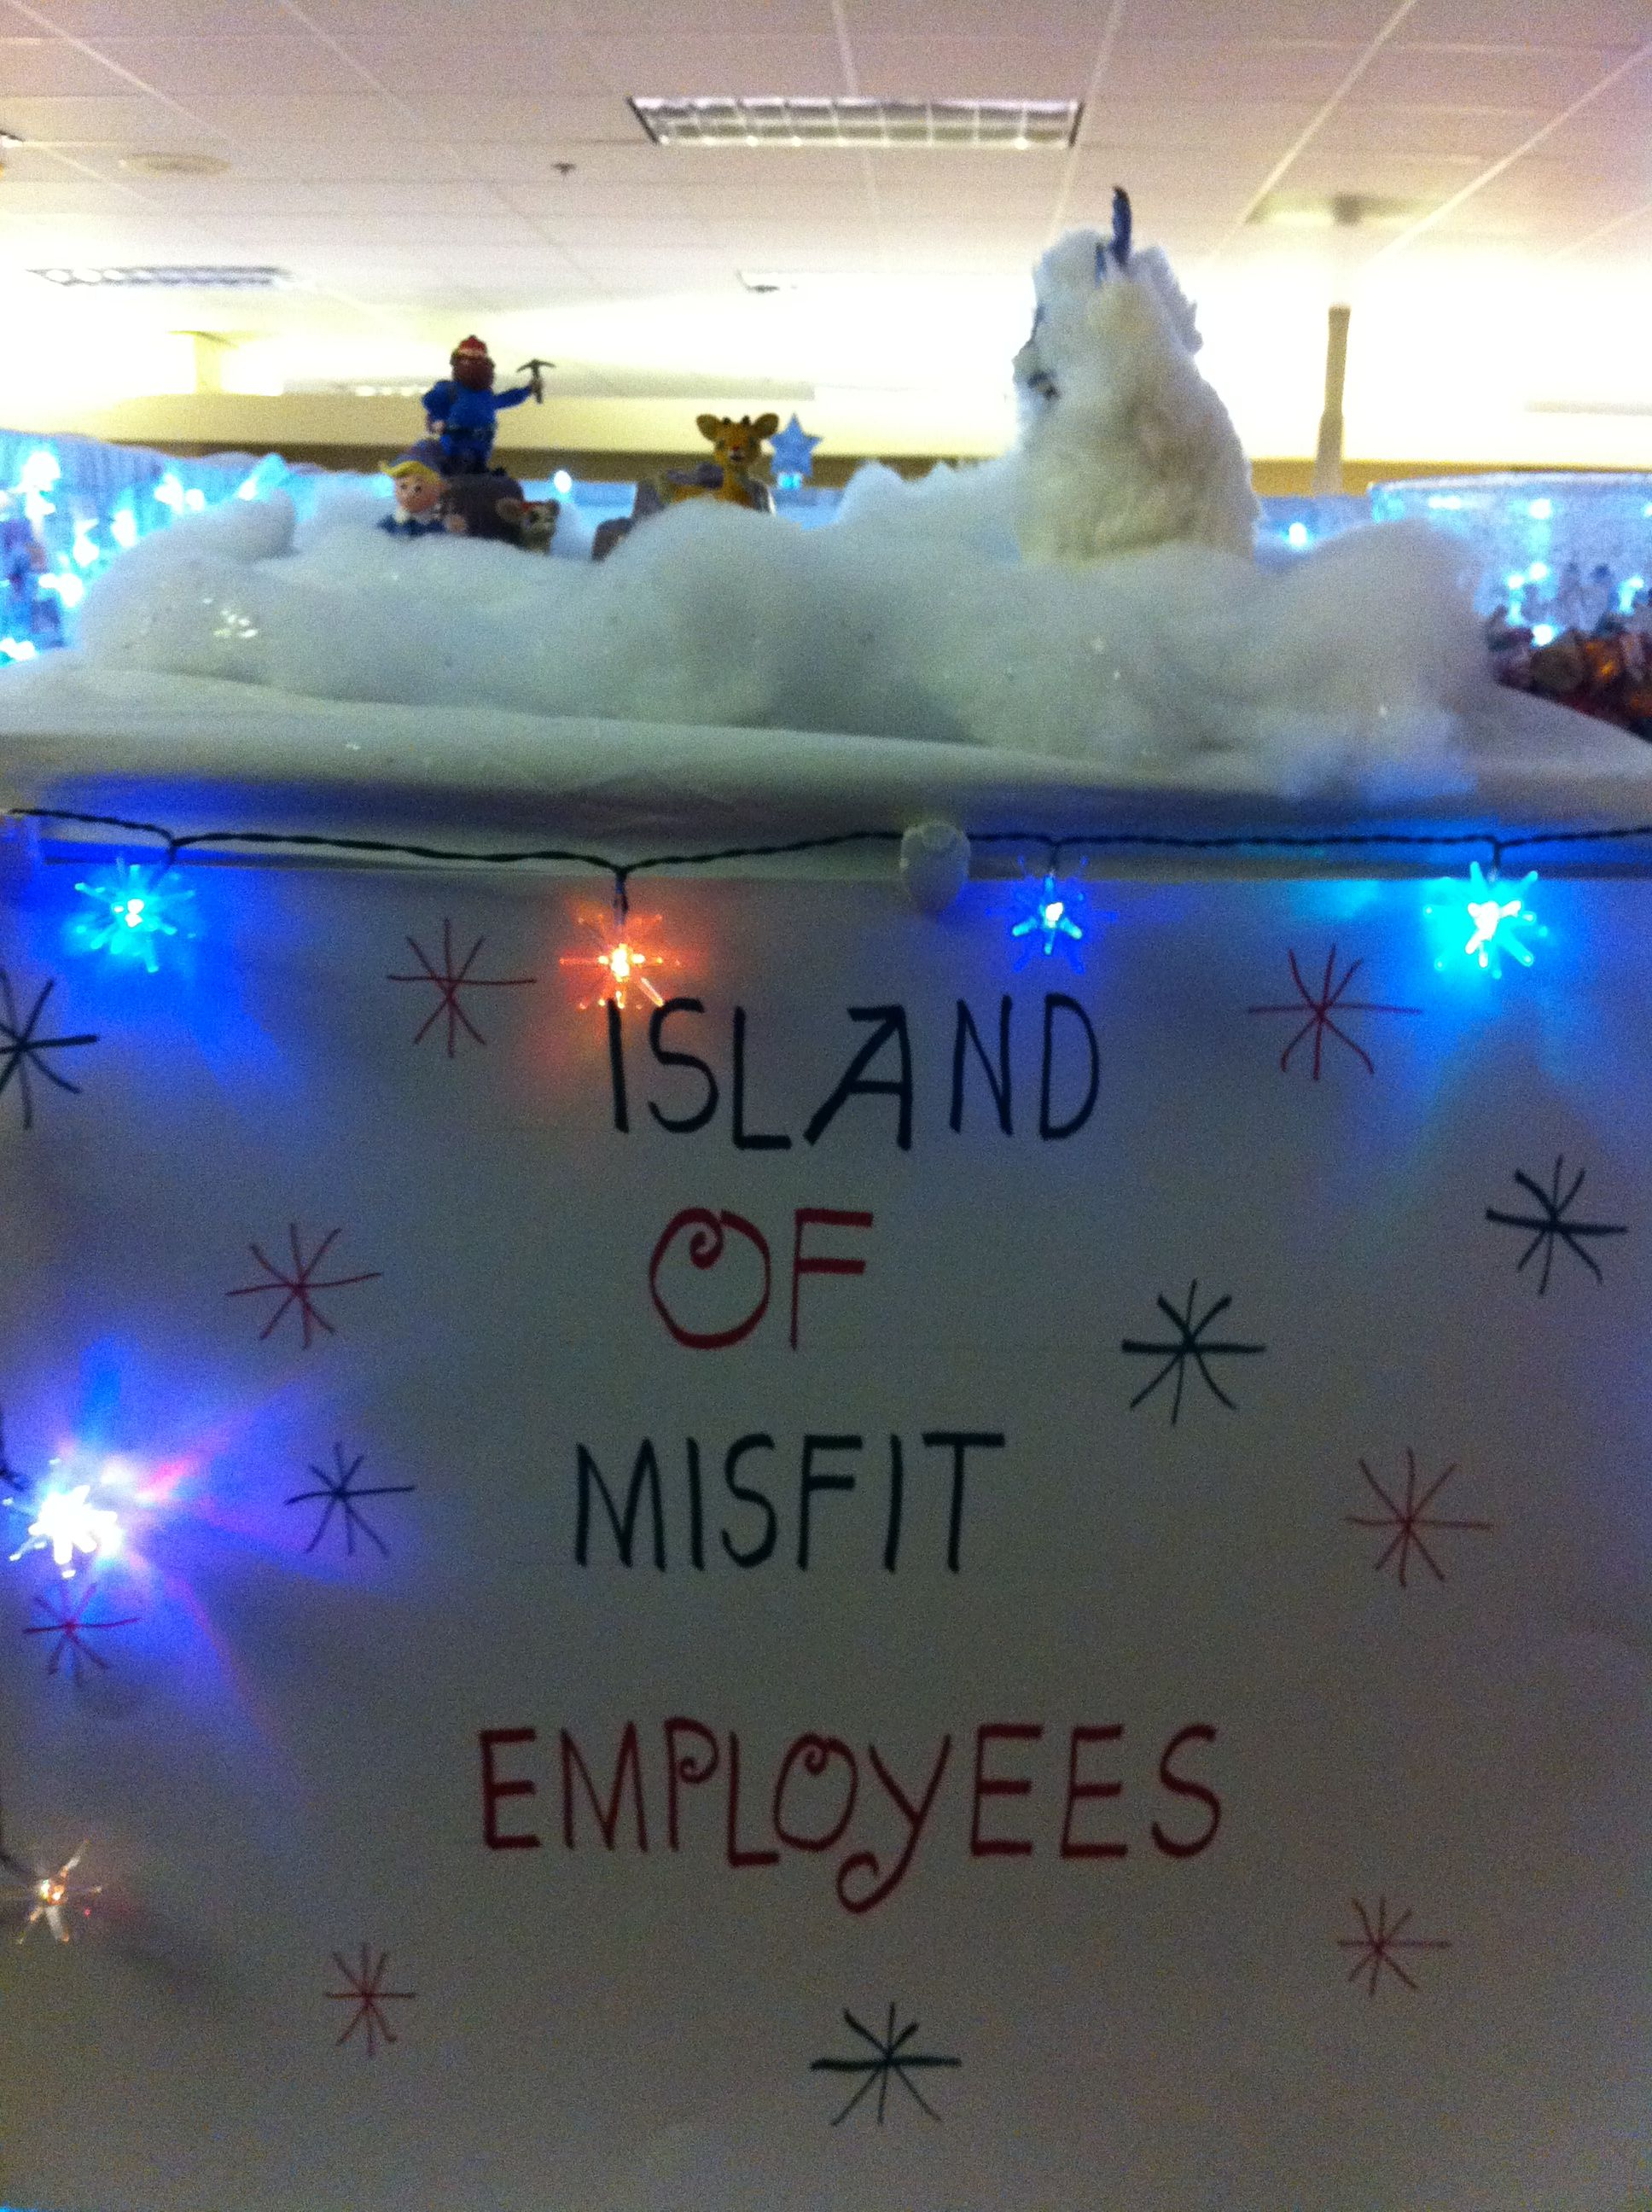 island of misfit employees christmas cubicle cubicle decorating